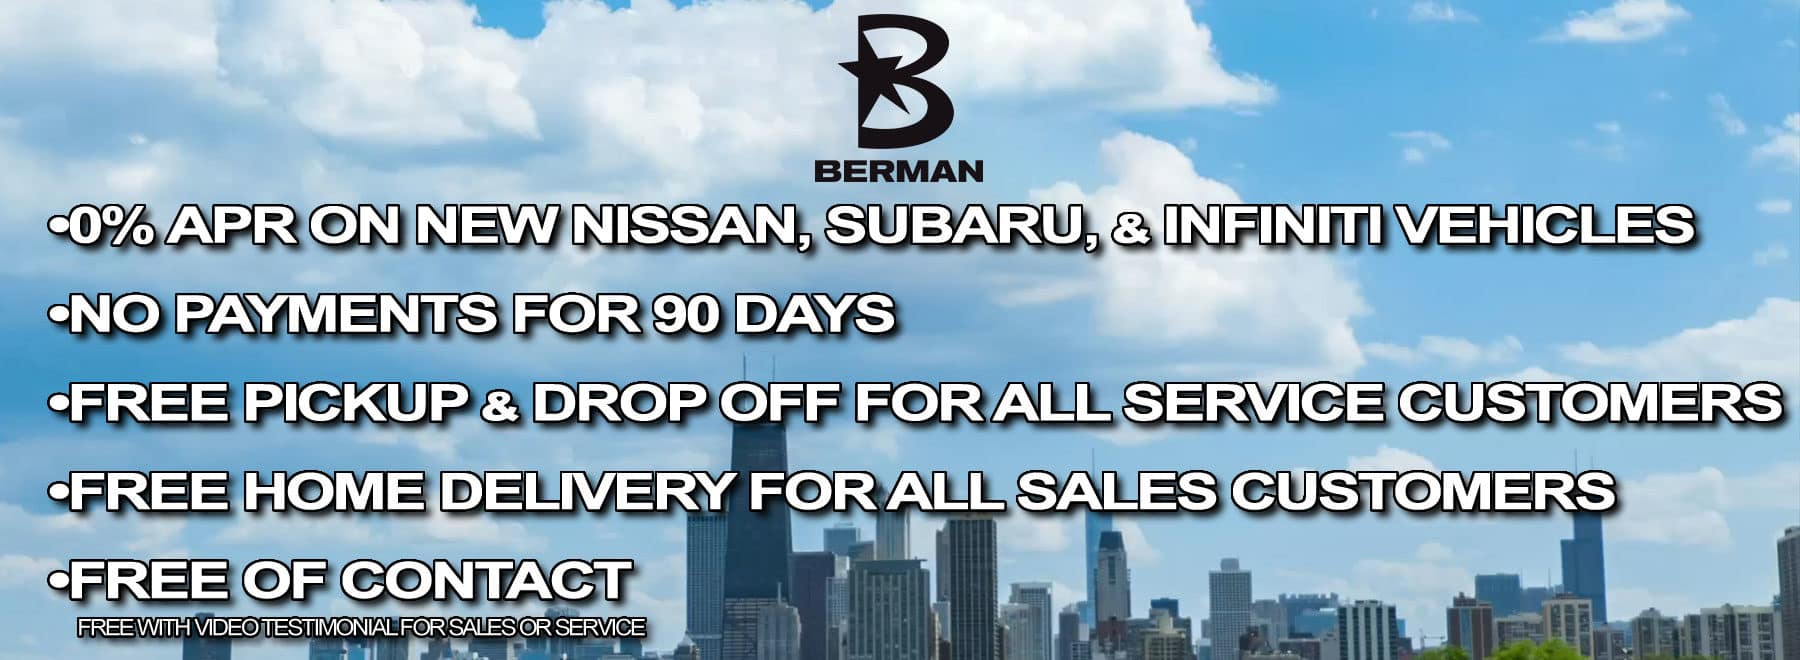 Get FREE Pickup and Delivery for Service Customers and FREE In-Home Delivery with Berman Express, all FREE of contact